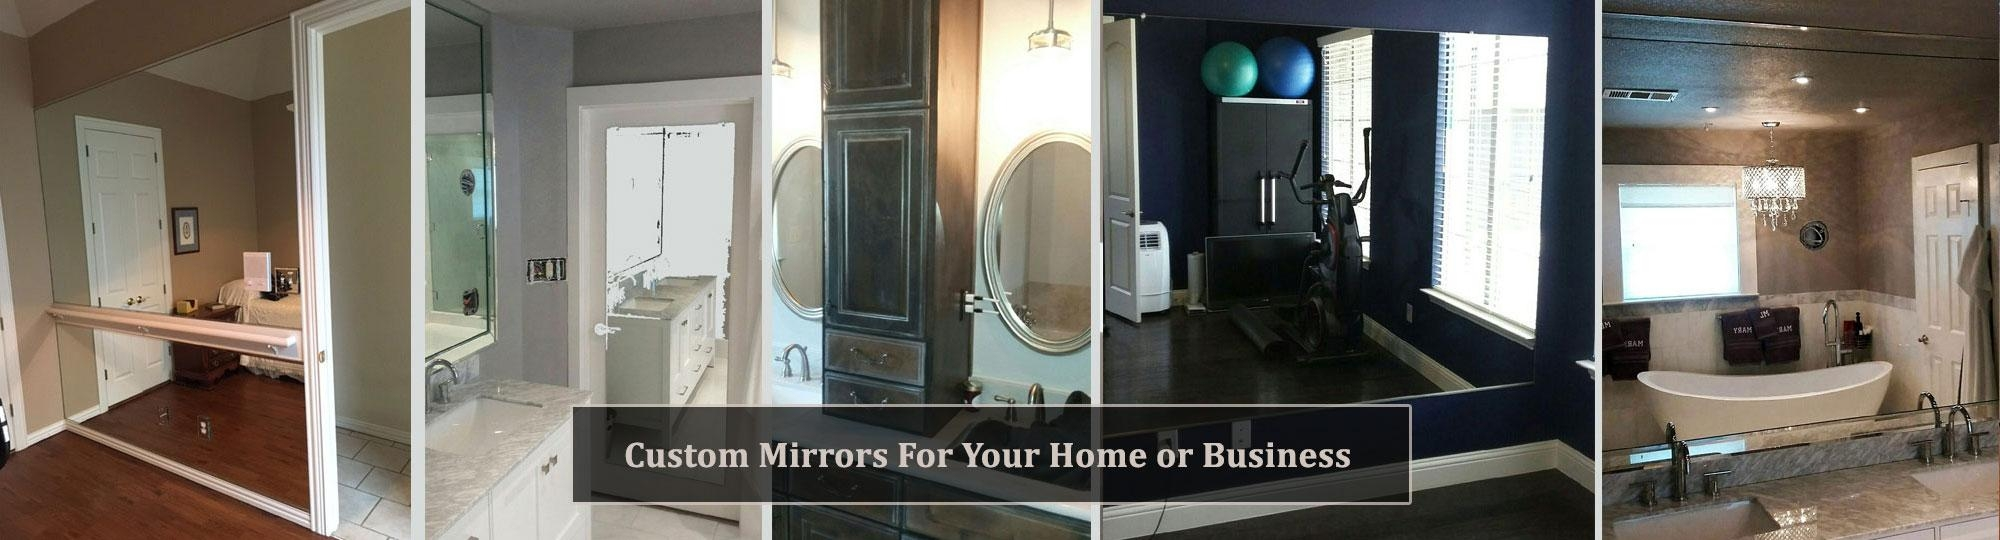 Customized Glass And Mirror Services | Keller Glass & Mirror Within Orlando Custom Mirrors (View 8 of 20)